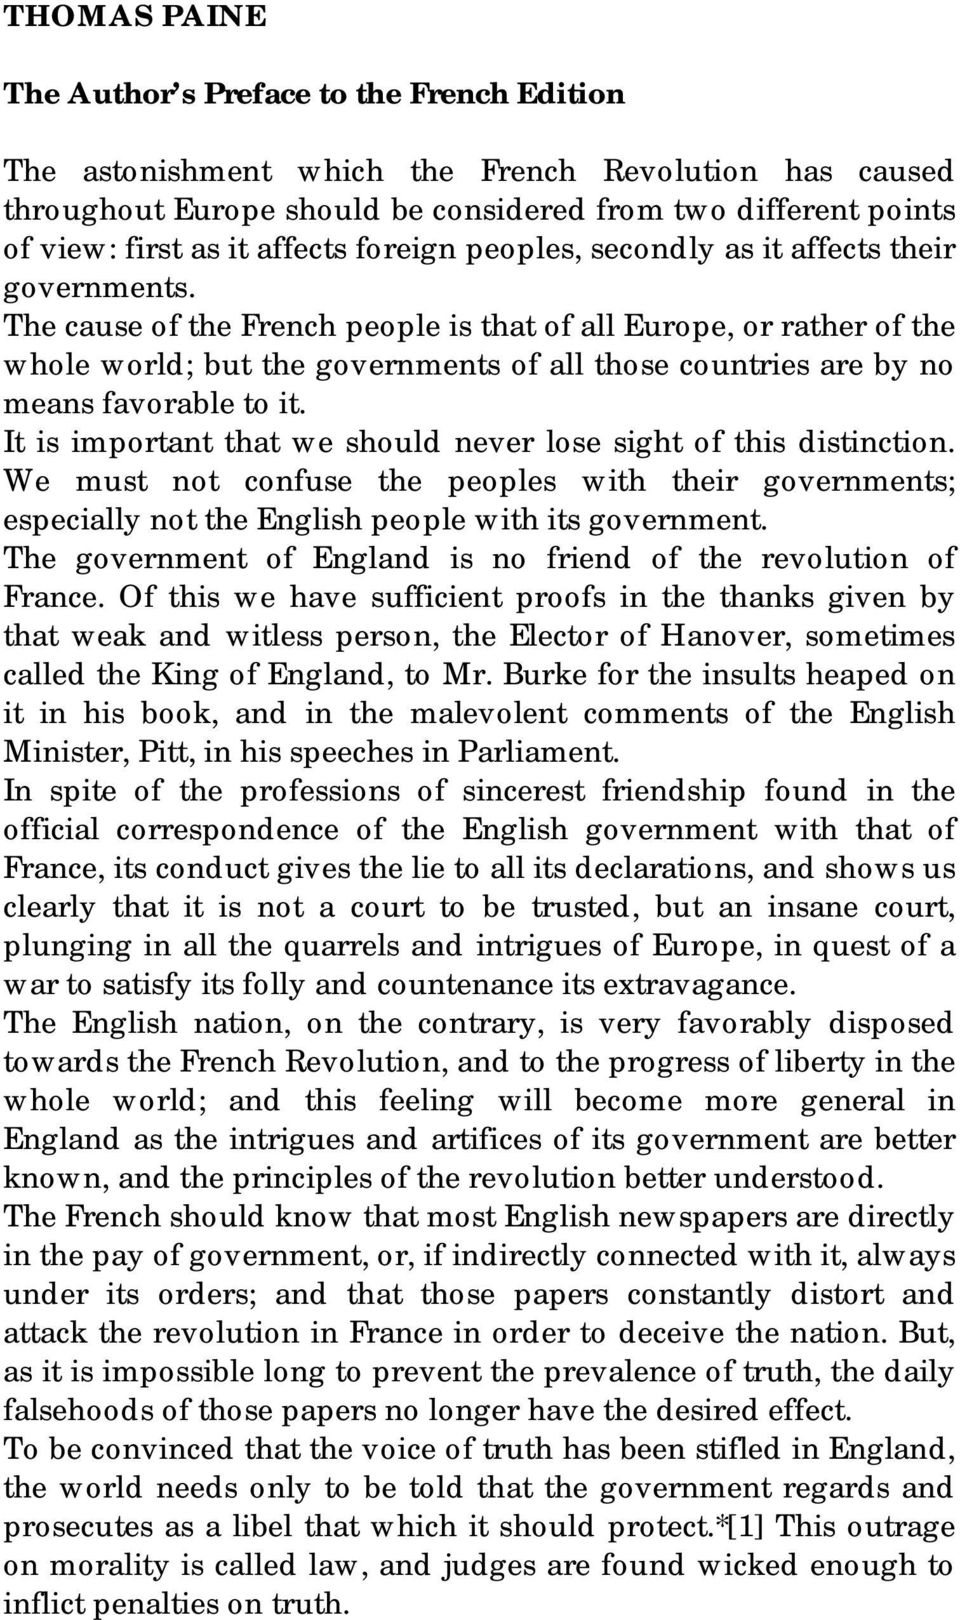 The cause of the French people is that of all Europe, or rather of the whole world; but the governments of all those countries are by no means favorable to it.